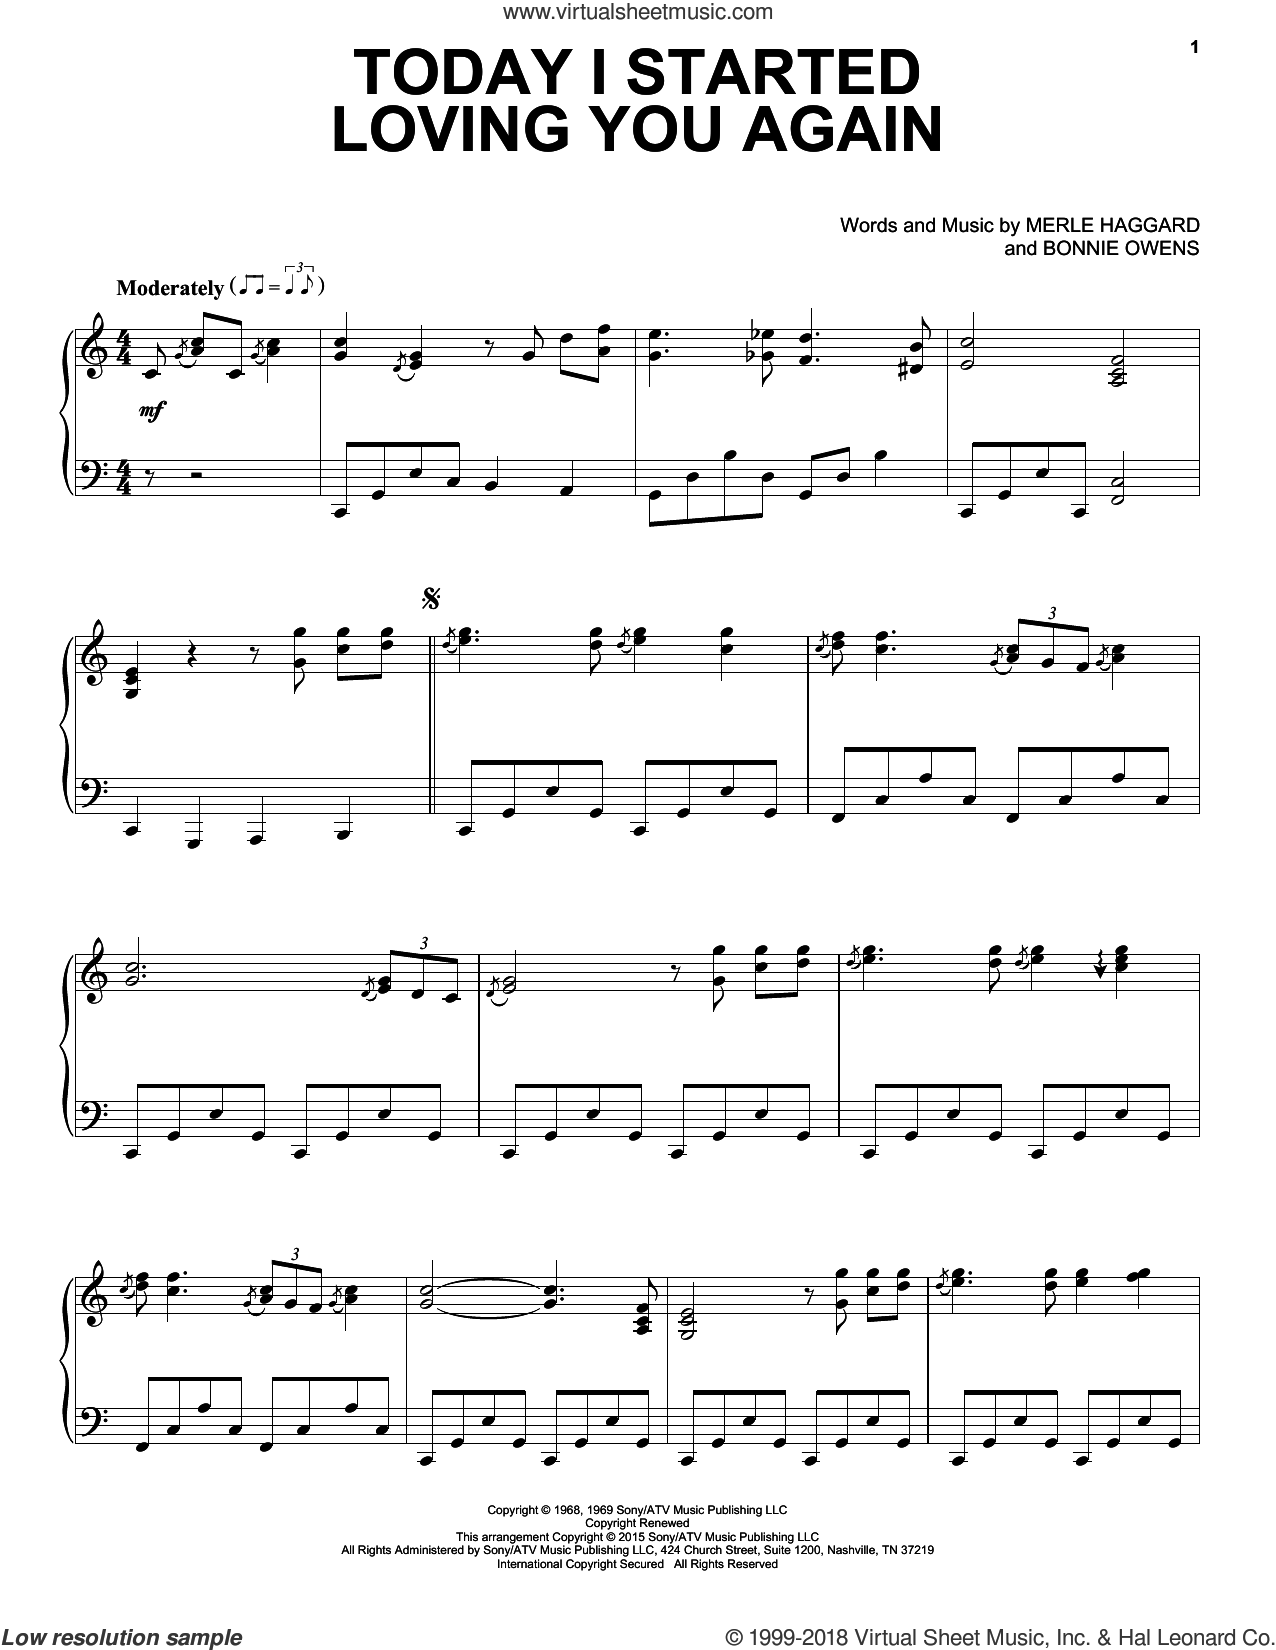 Today I Started Loving You Again sheet music for piano solo by Merle Haggard and Bonnie Owens, intermediate skill level